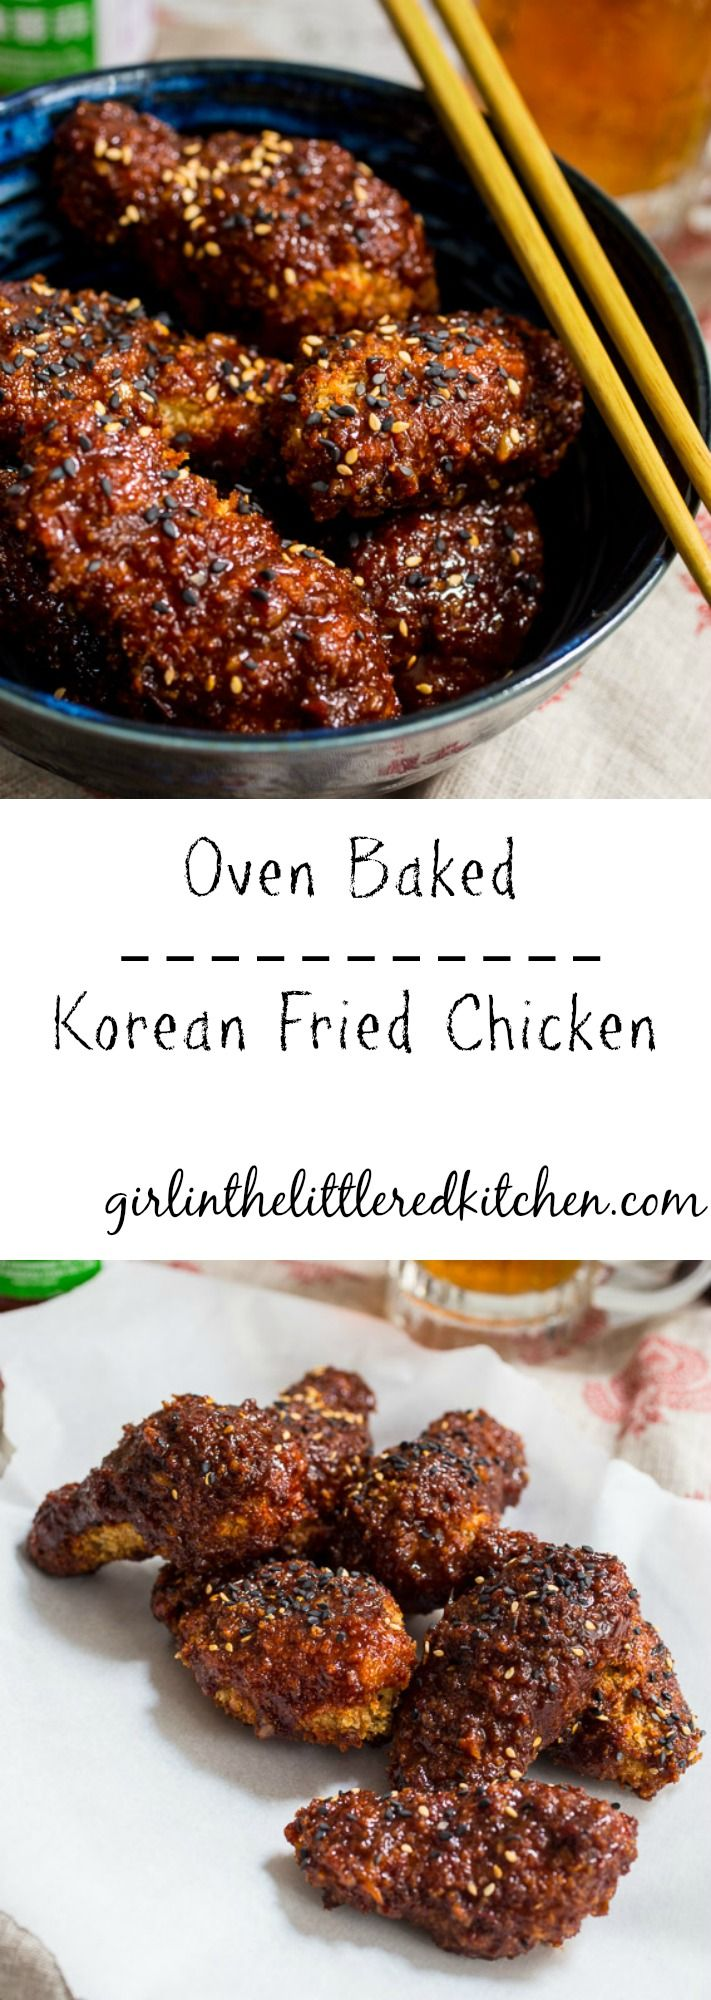 Oven Baked Korean Fried Chicken